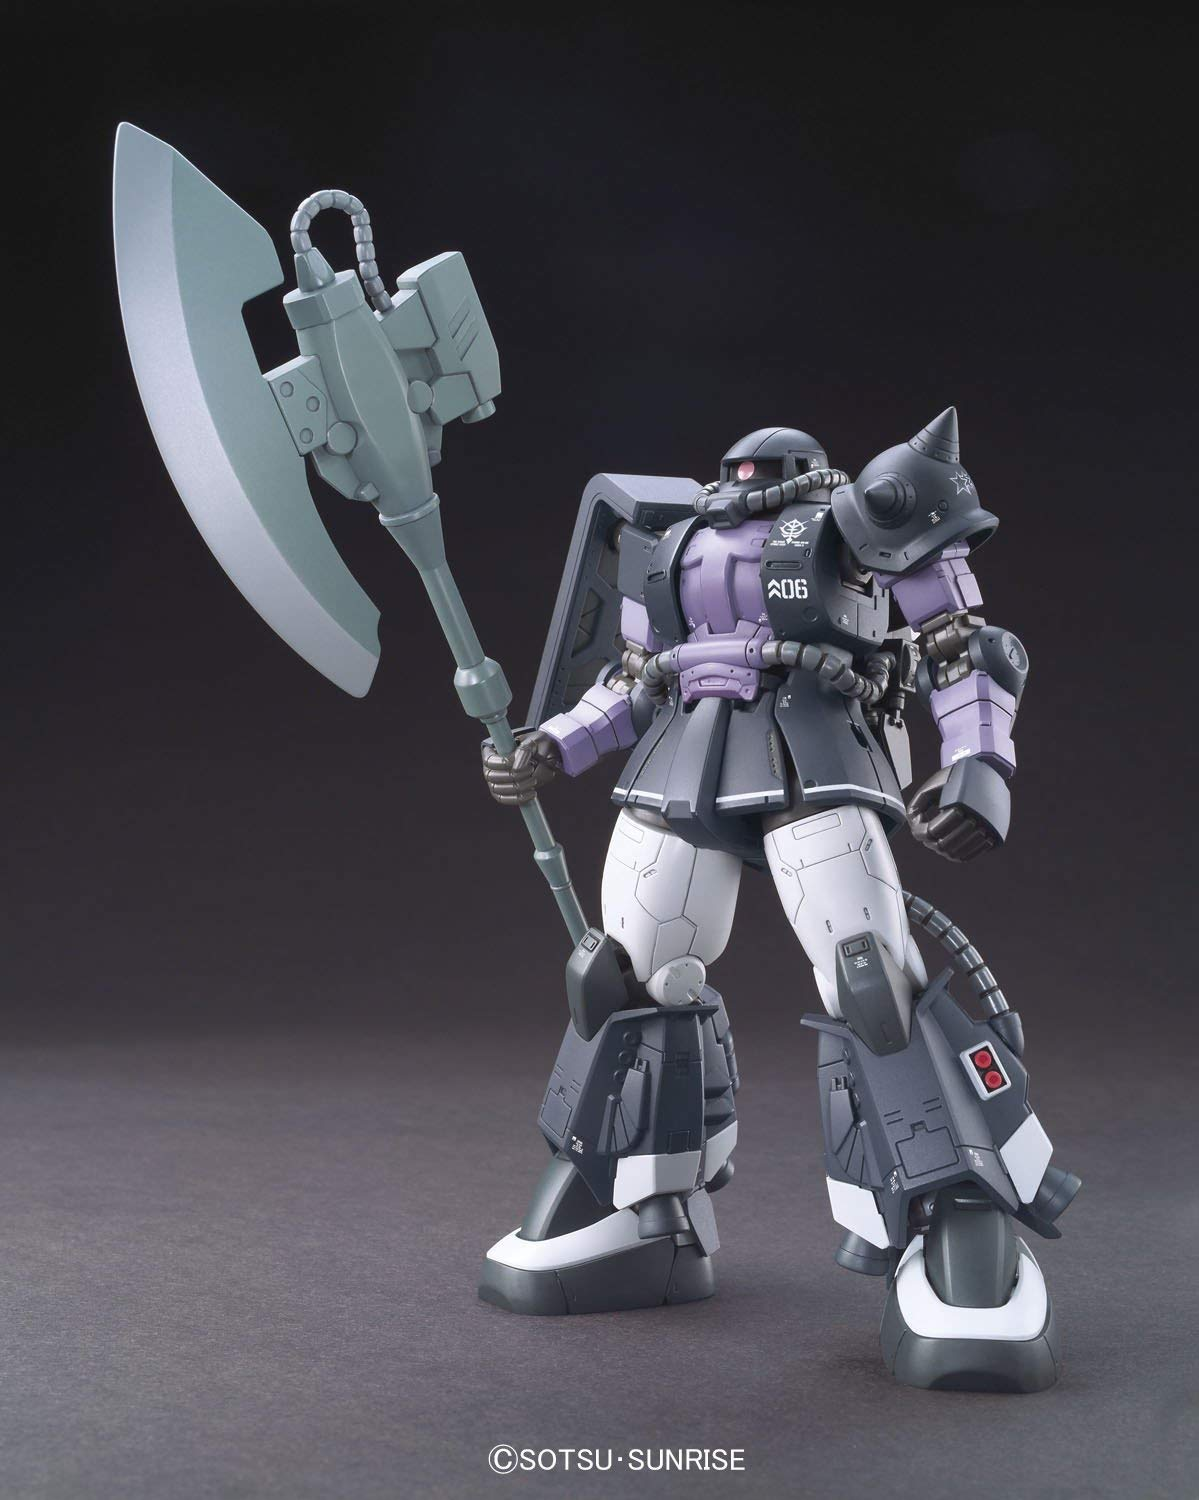 HG 1/144 MS-06R-1A 高機動型ザクII(オルテガ専用機) [Zaku II High Mobility Type (Ortega Custom)] 0196697 5057734 4543112966971 4573102577344